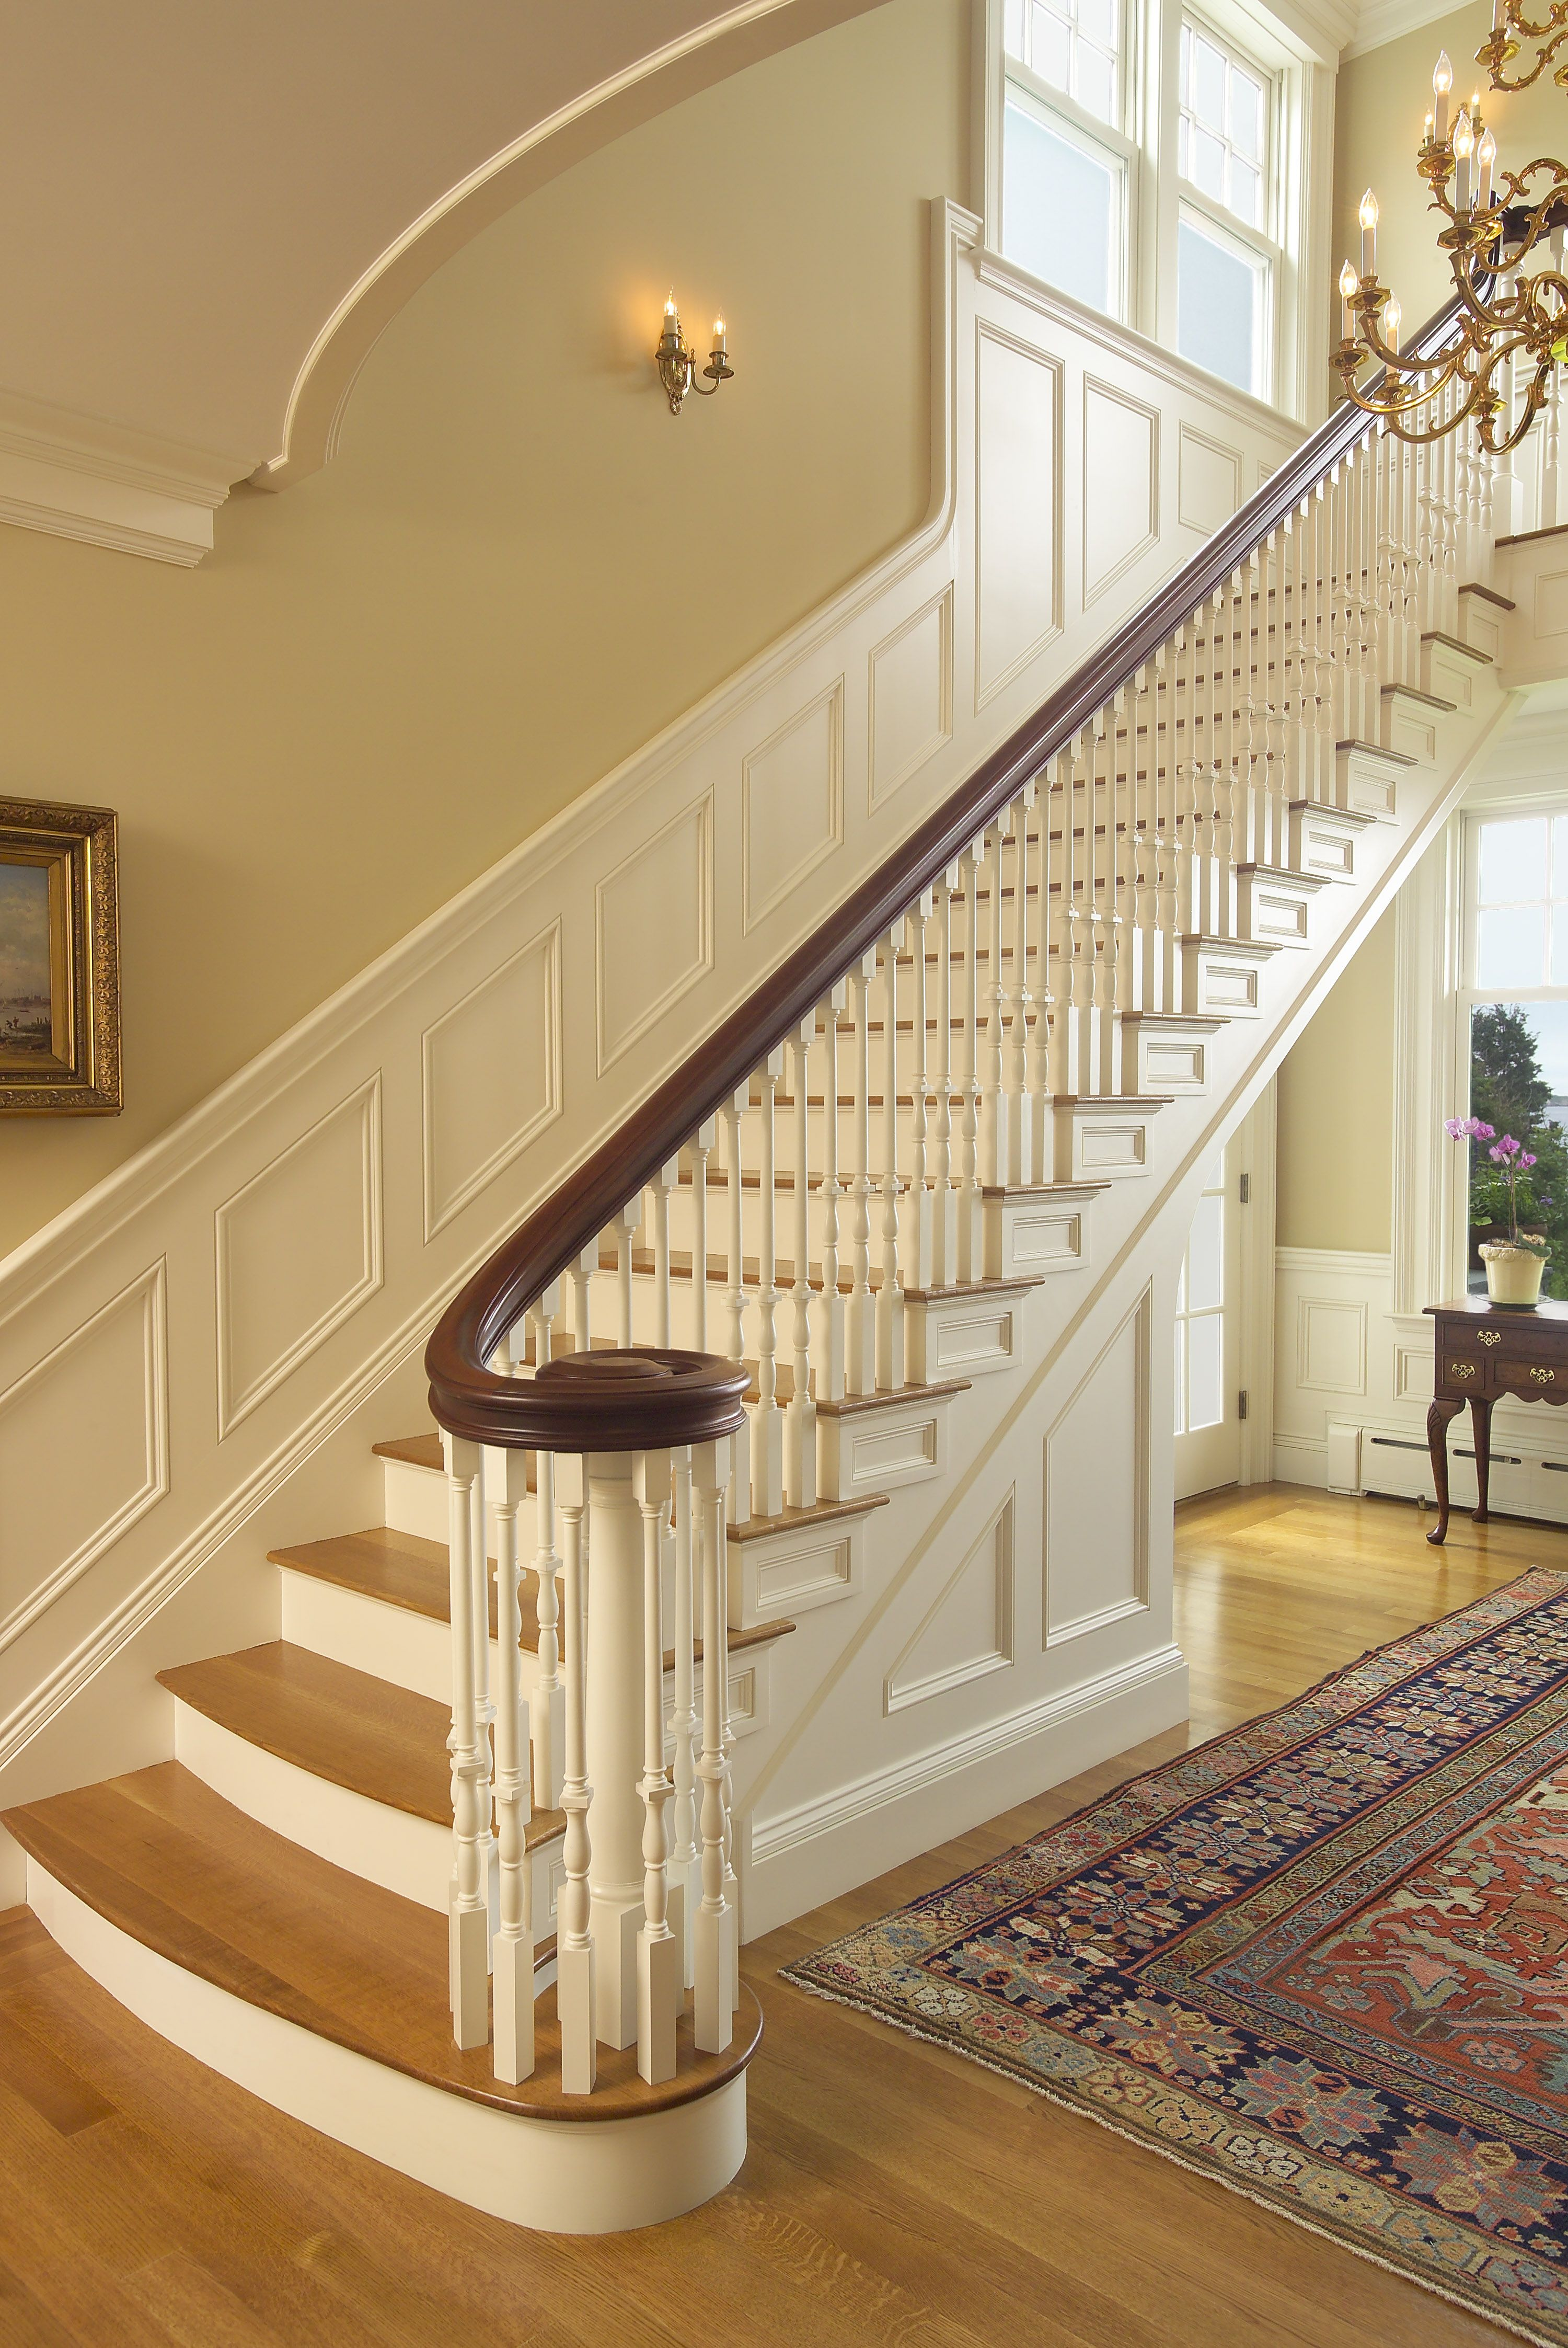 Paneled Staircase Formal Curving Staircase With Paneling Doors And Staircases